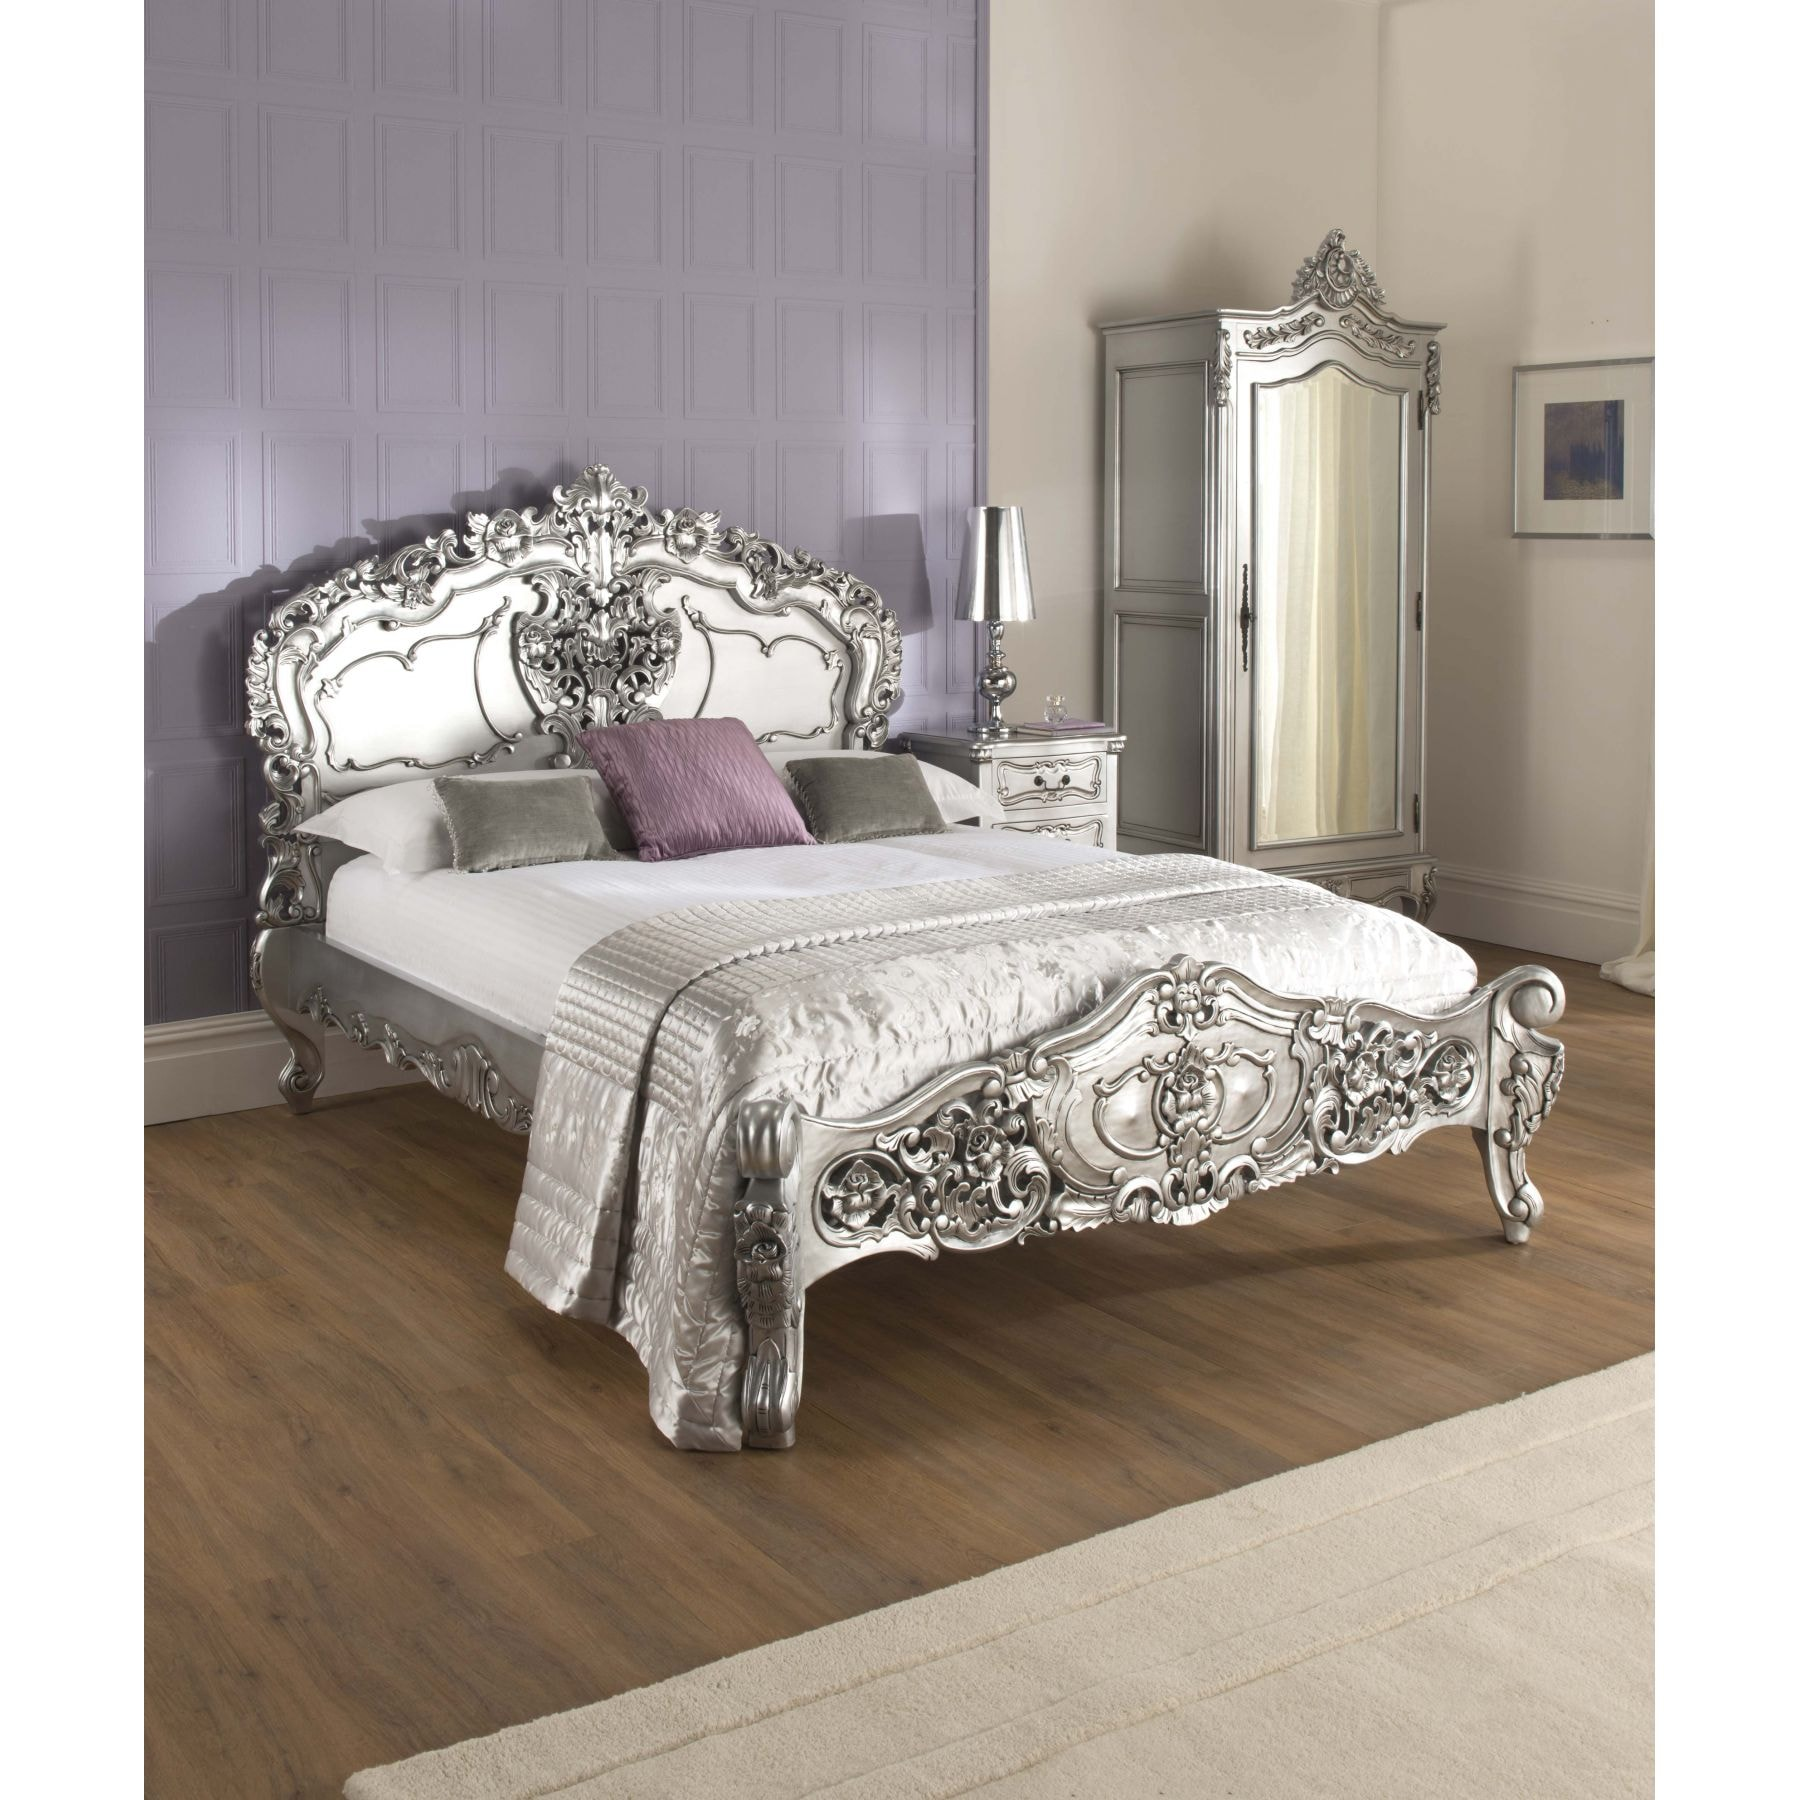 Silver Rococo Antique French Bed  Size  Kingsize    Mattress   Bundle Deal. Antique French Bed Bundle Deal   Half Price Mattress Deal